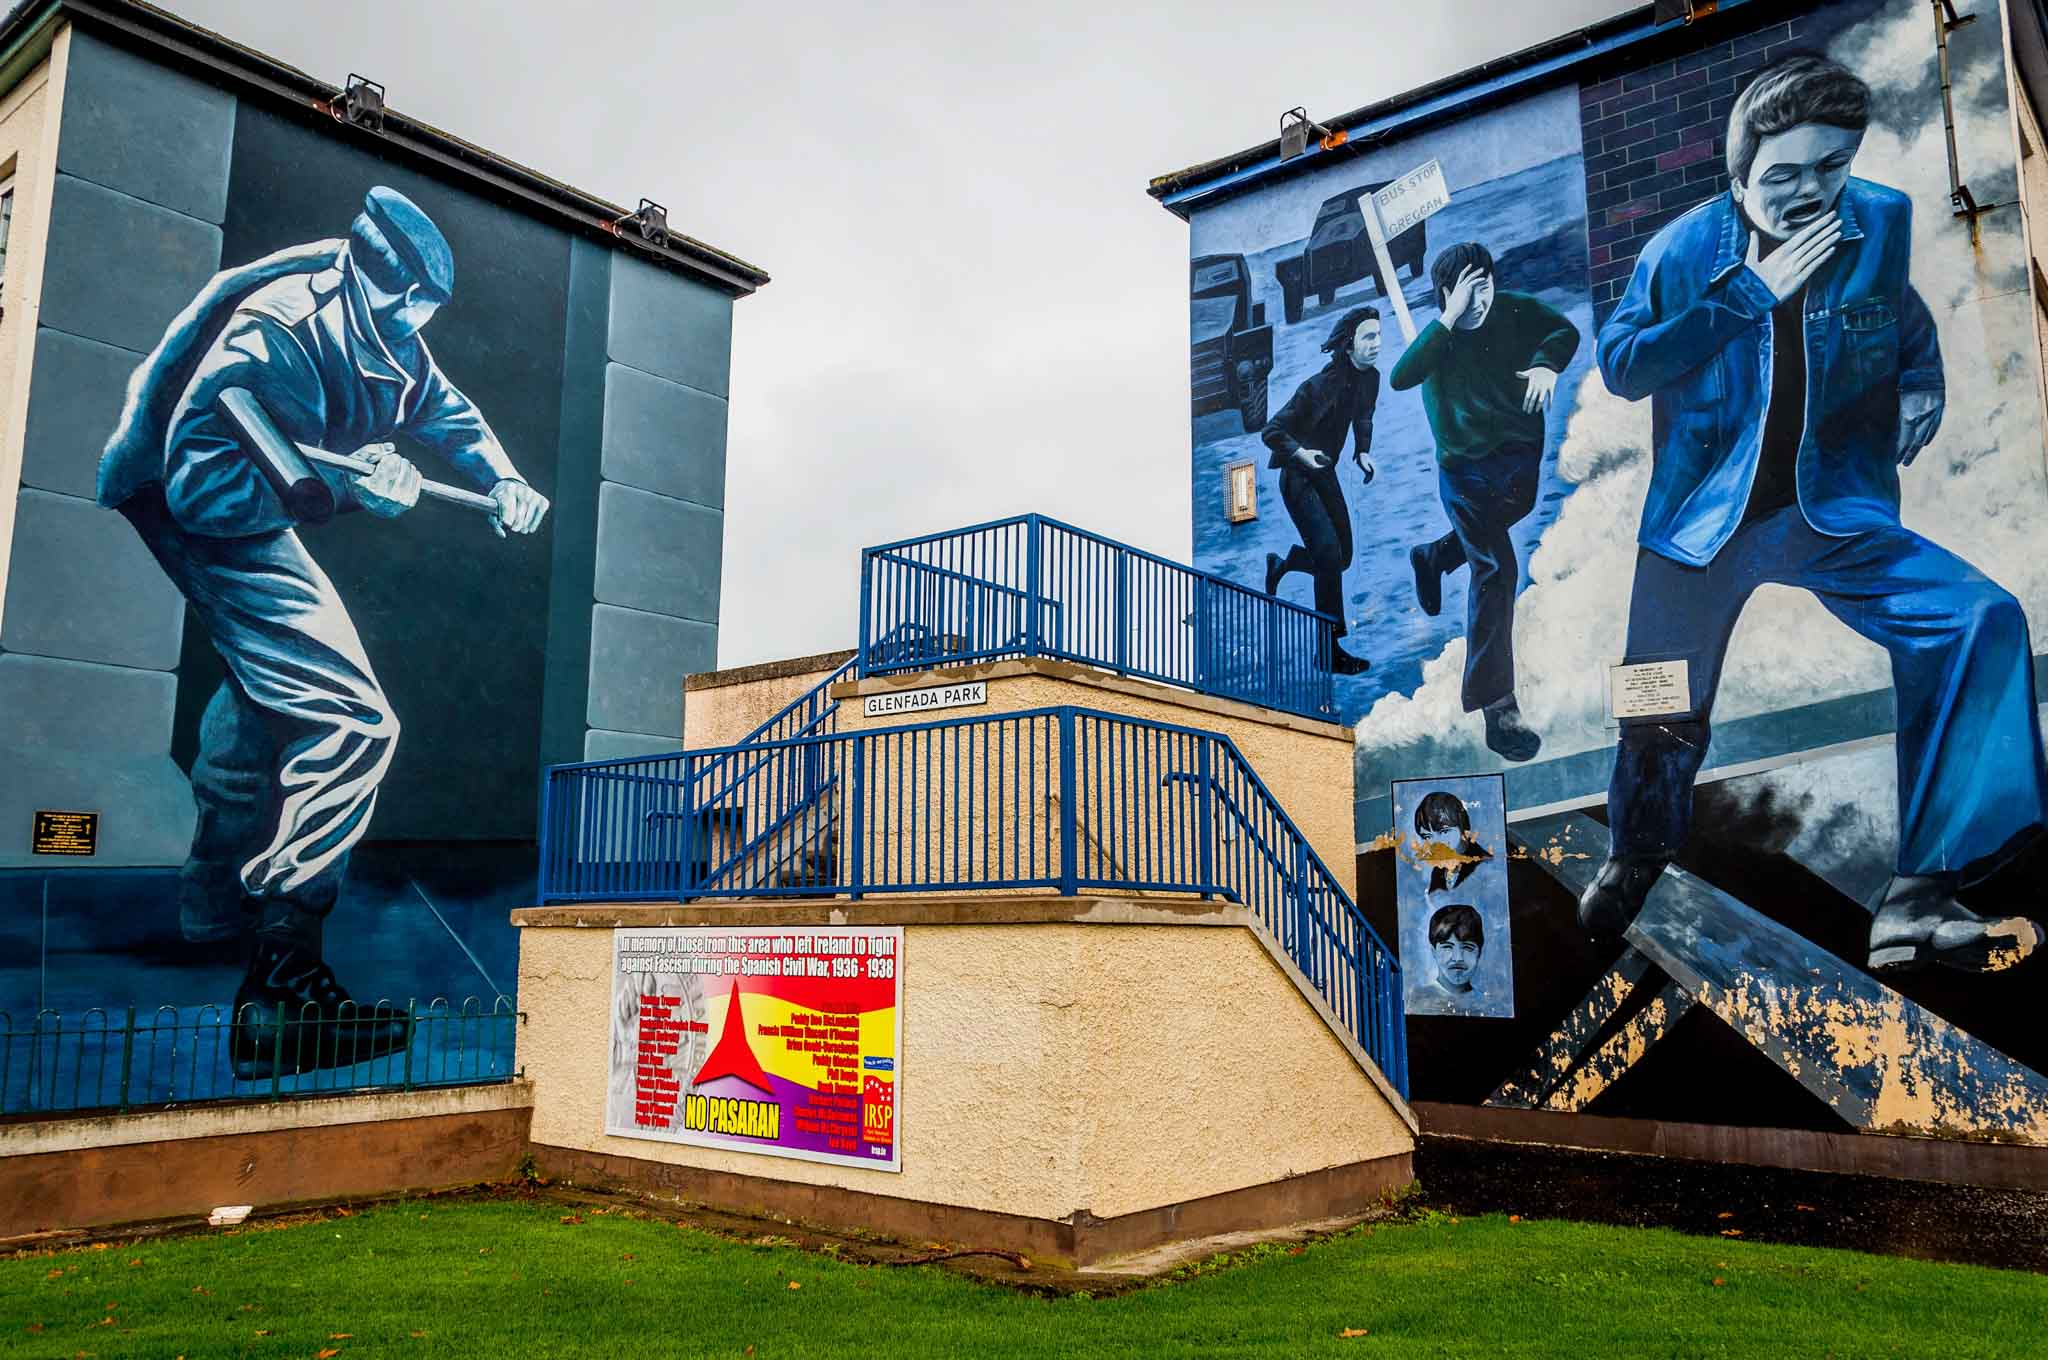 Two of the Bogside Derry murals -- Operation Motorman and The Runner